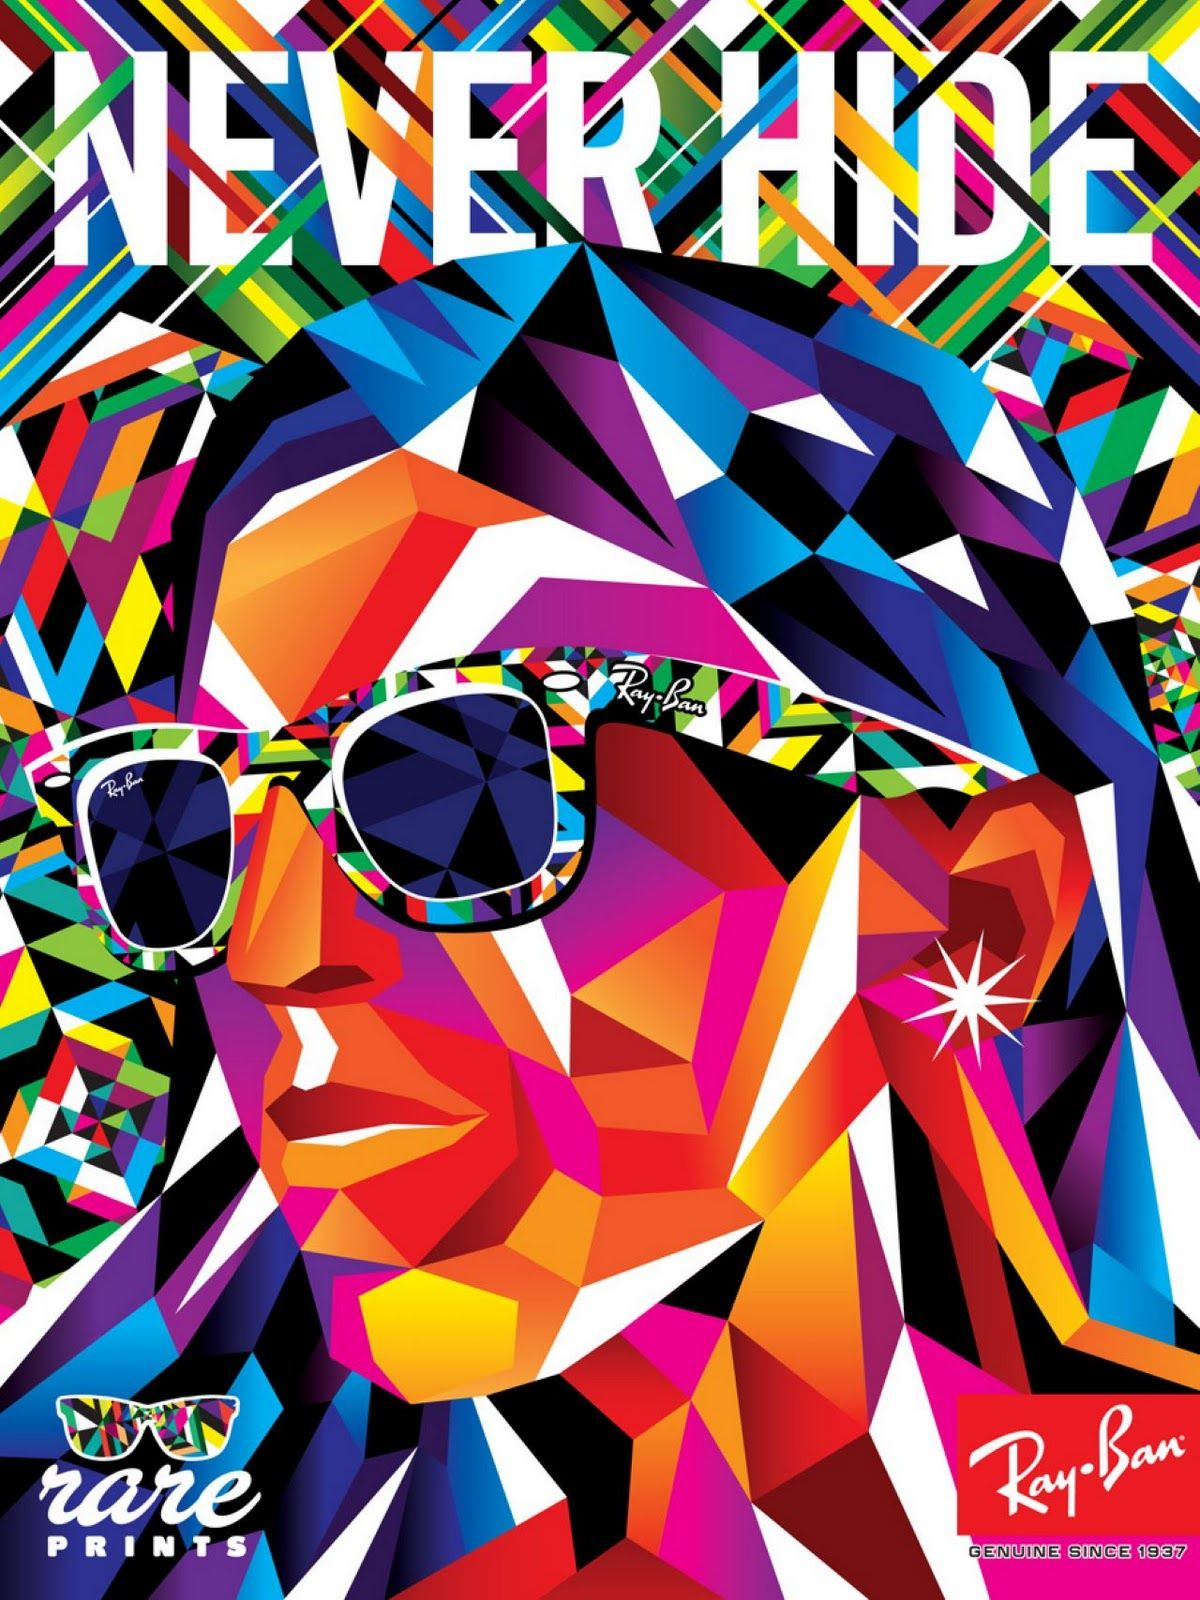 X ray poster design - Matt W Moore X Ray Ban Rare Prints Wayfarer Taking On Ray Ban S Iconic Wayfarer Sunglasses This New Edition Dubbed Rare Prints Has Been Designed By